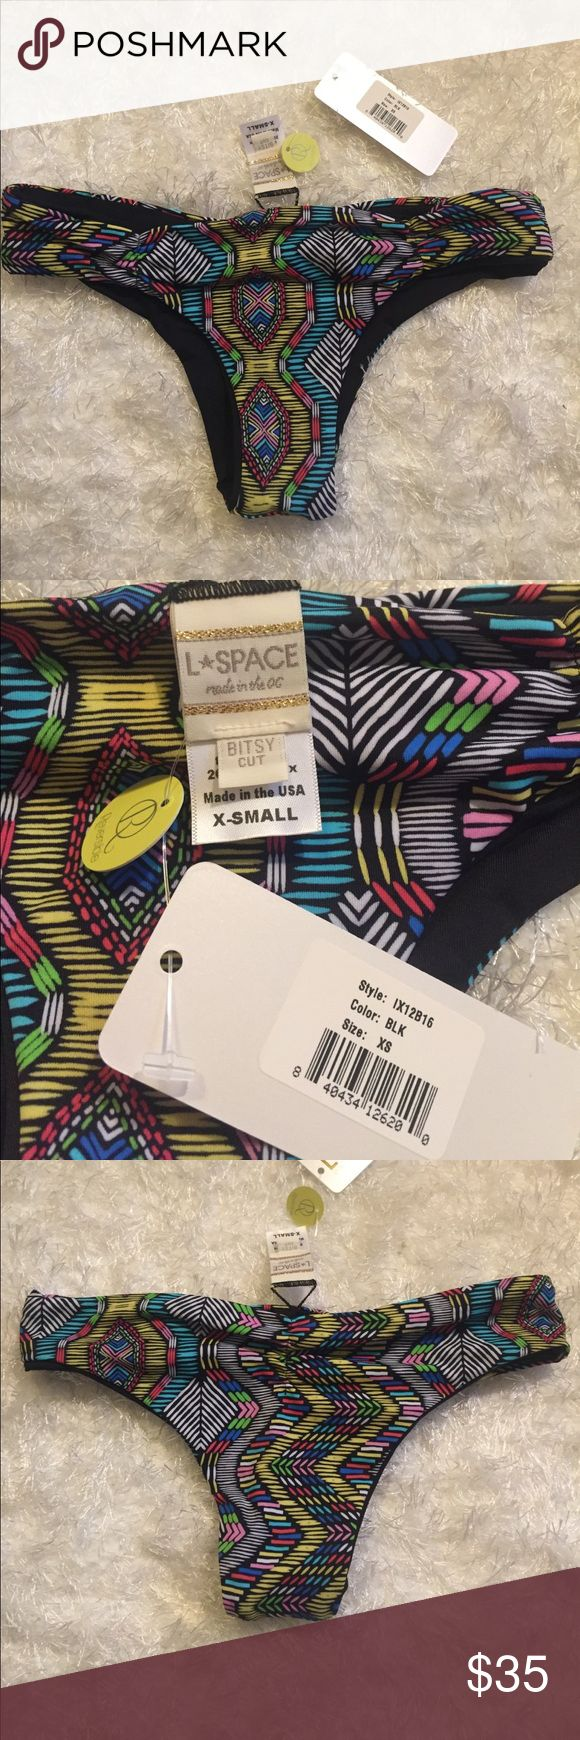 L*Space Swim Bitsy Cut Reversible Bottoms XS NWT and liner! Never worn. Aztec and reversible solid black L*Space Swim bottoms! l*space Swim Bikinis